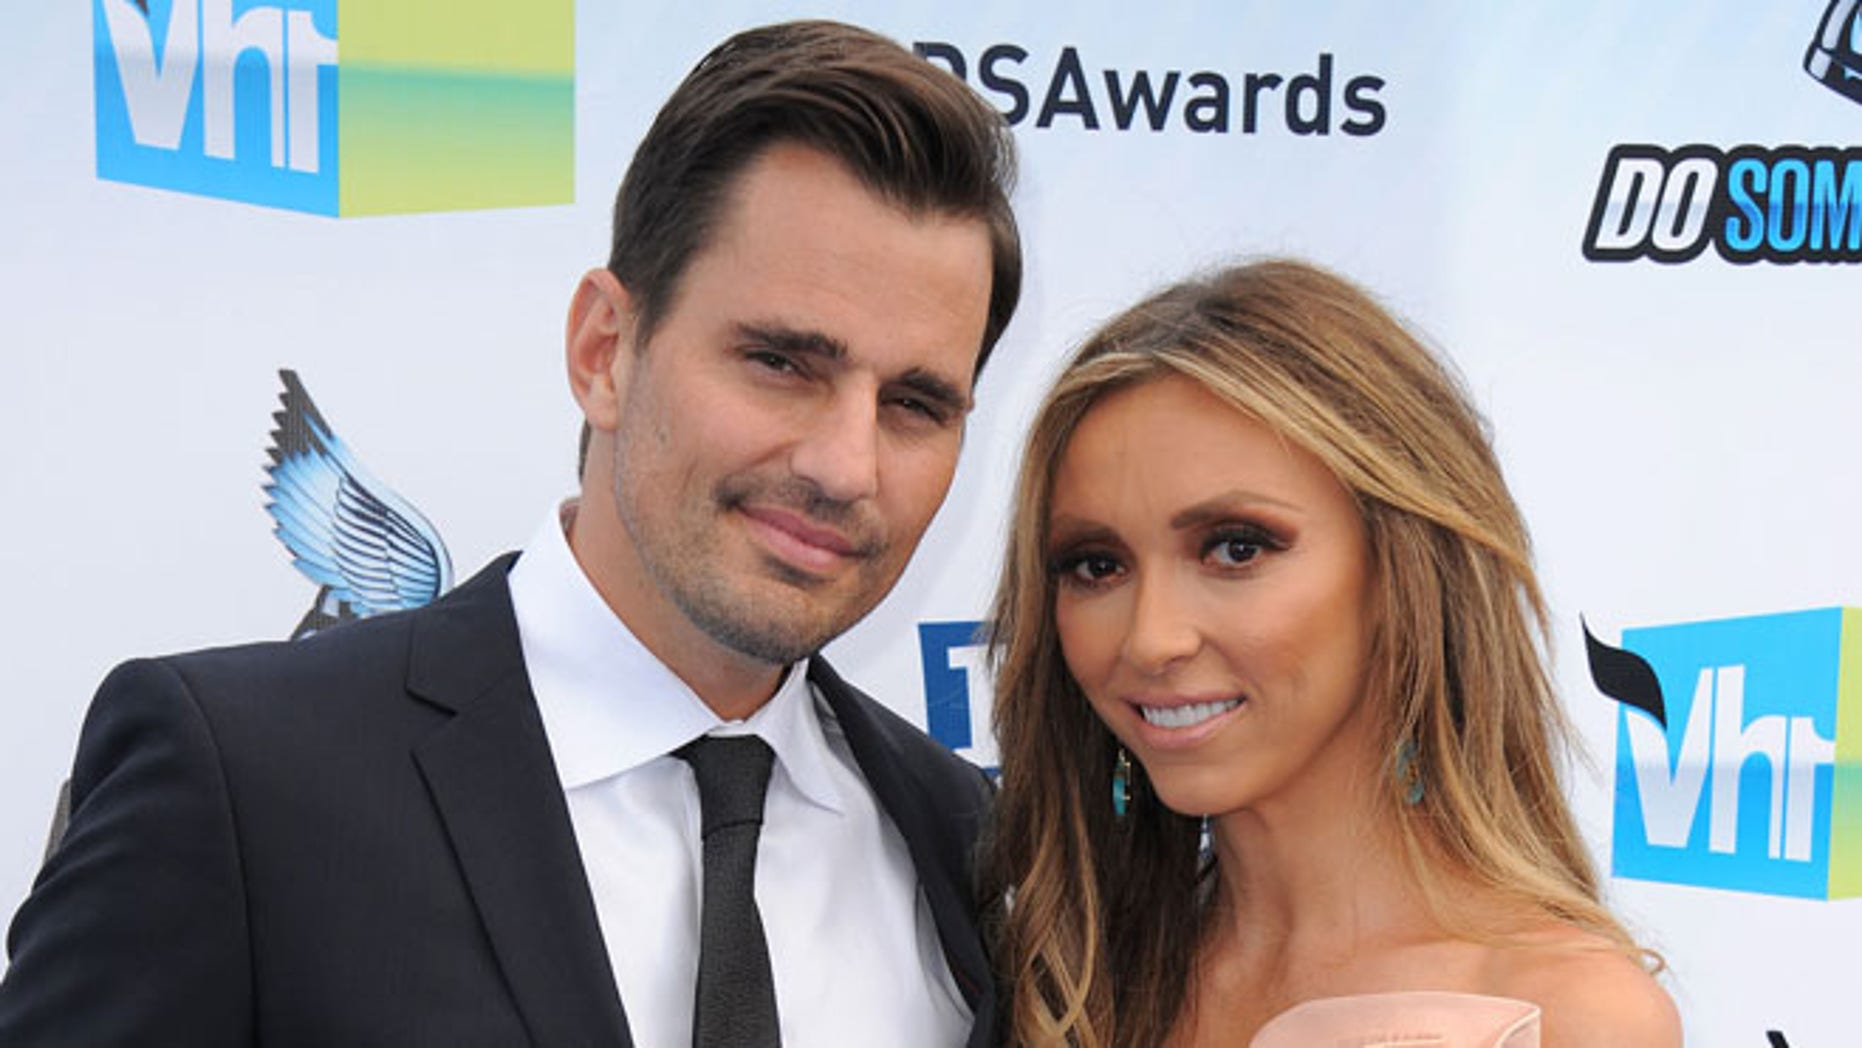 Aug. 19, 2012: This file photo shows Bill Rancic, left, and his wife Giuliana Rancic attending the 2012 Do Something awards in Santa Monica, Calif.